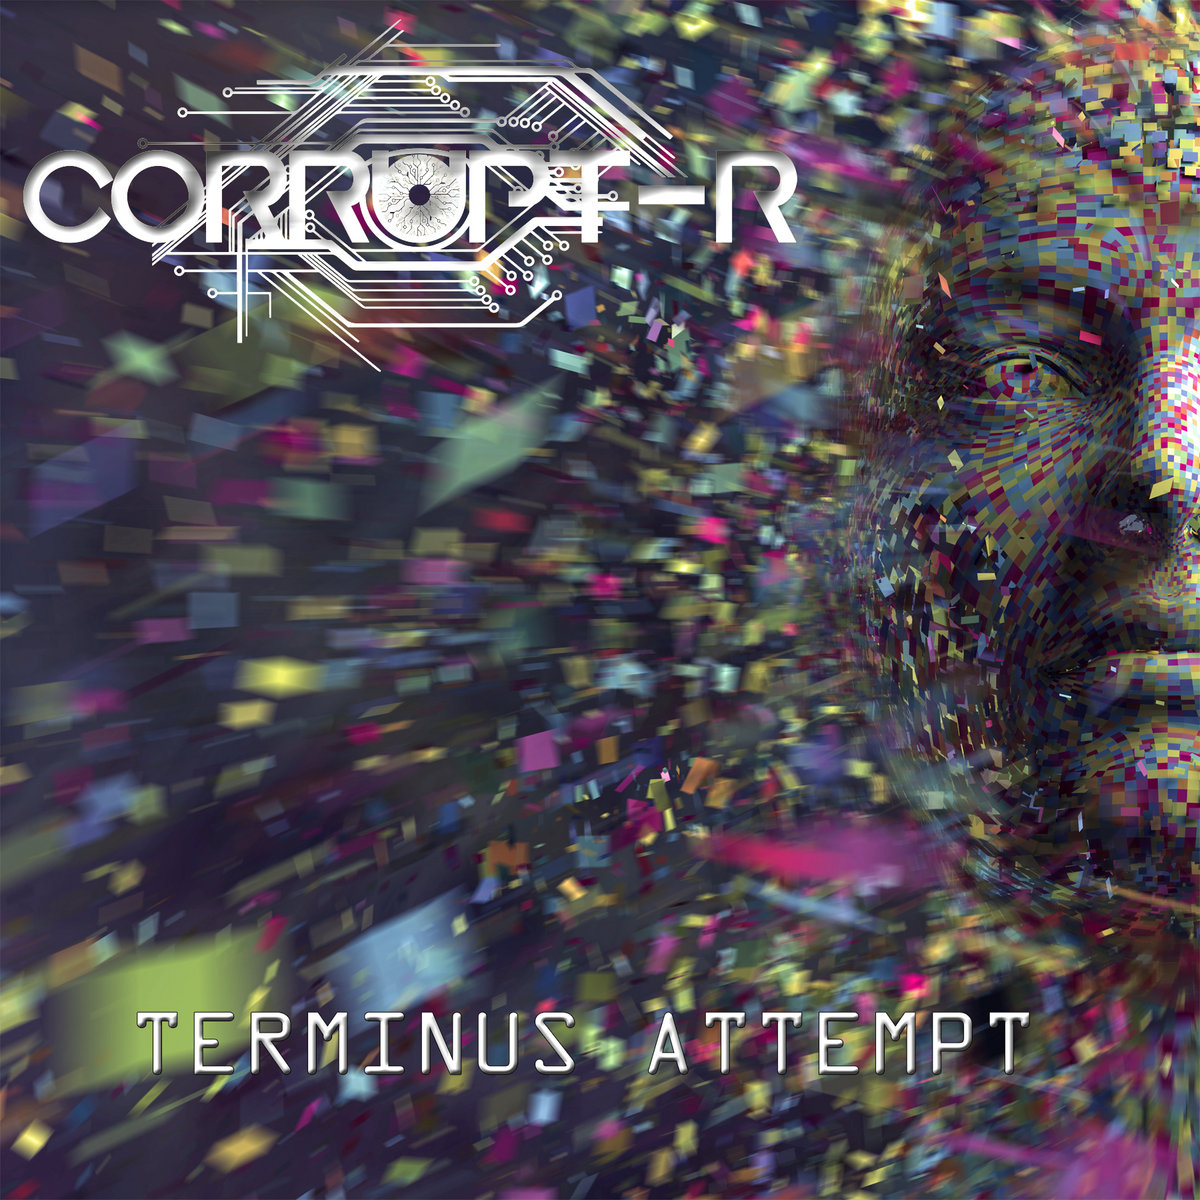 Terminus Attempt (feat. Andromida) by Corrupt-R